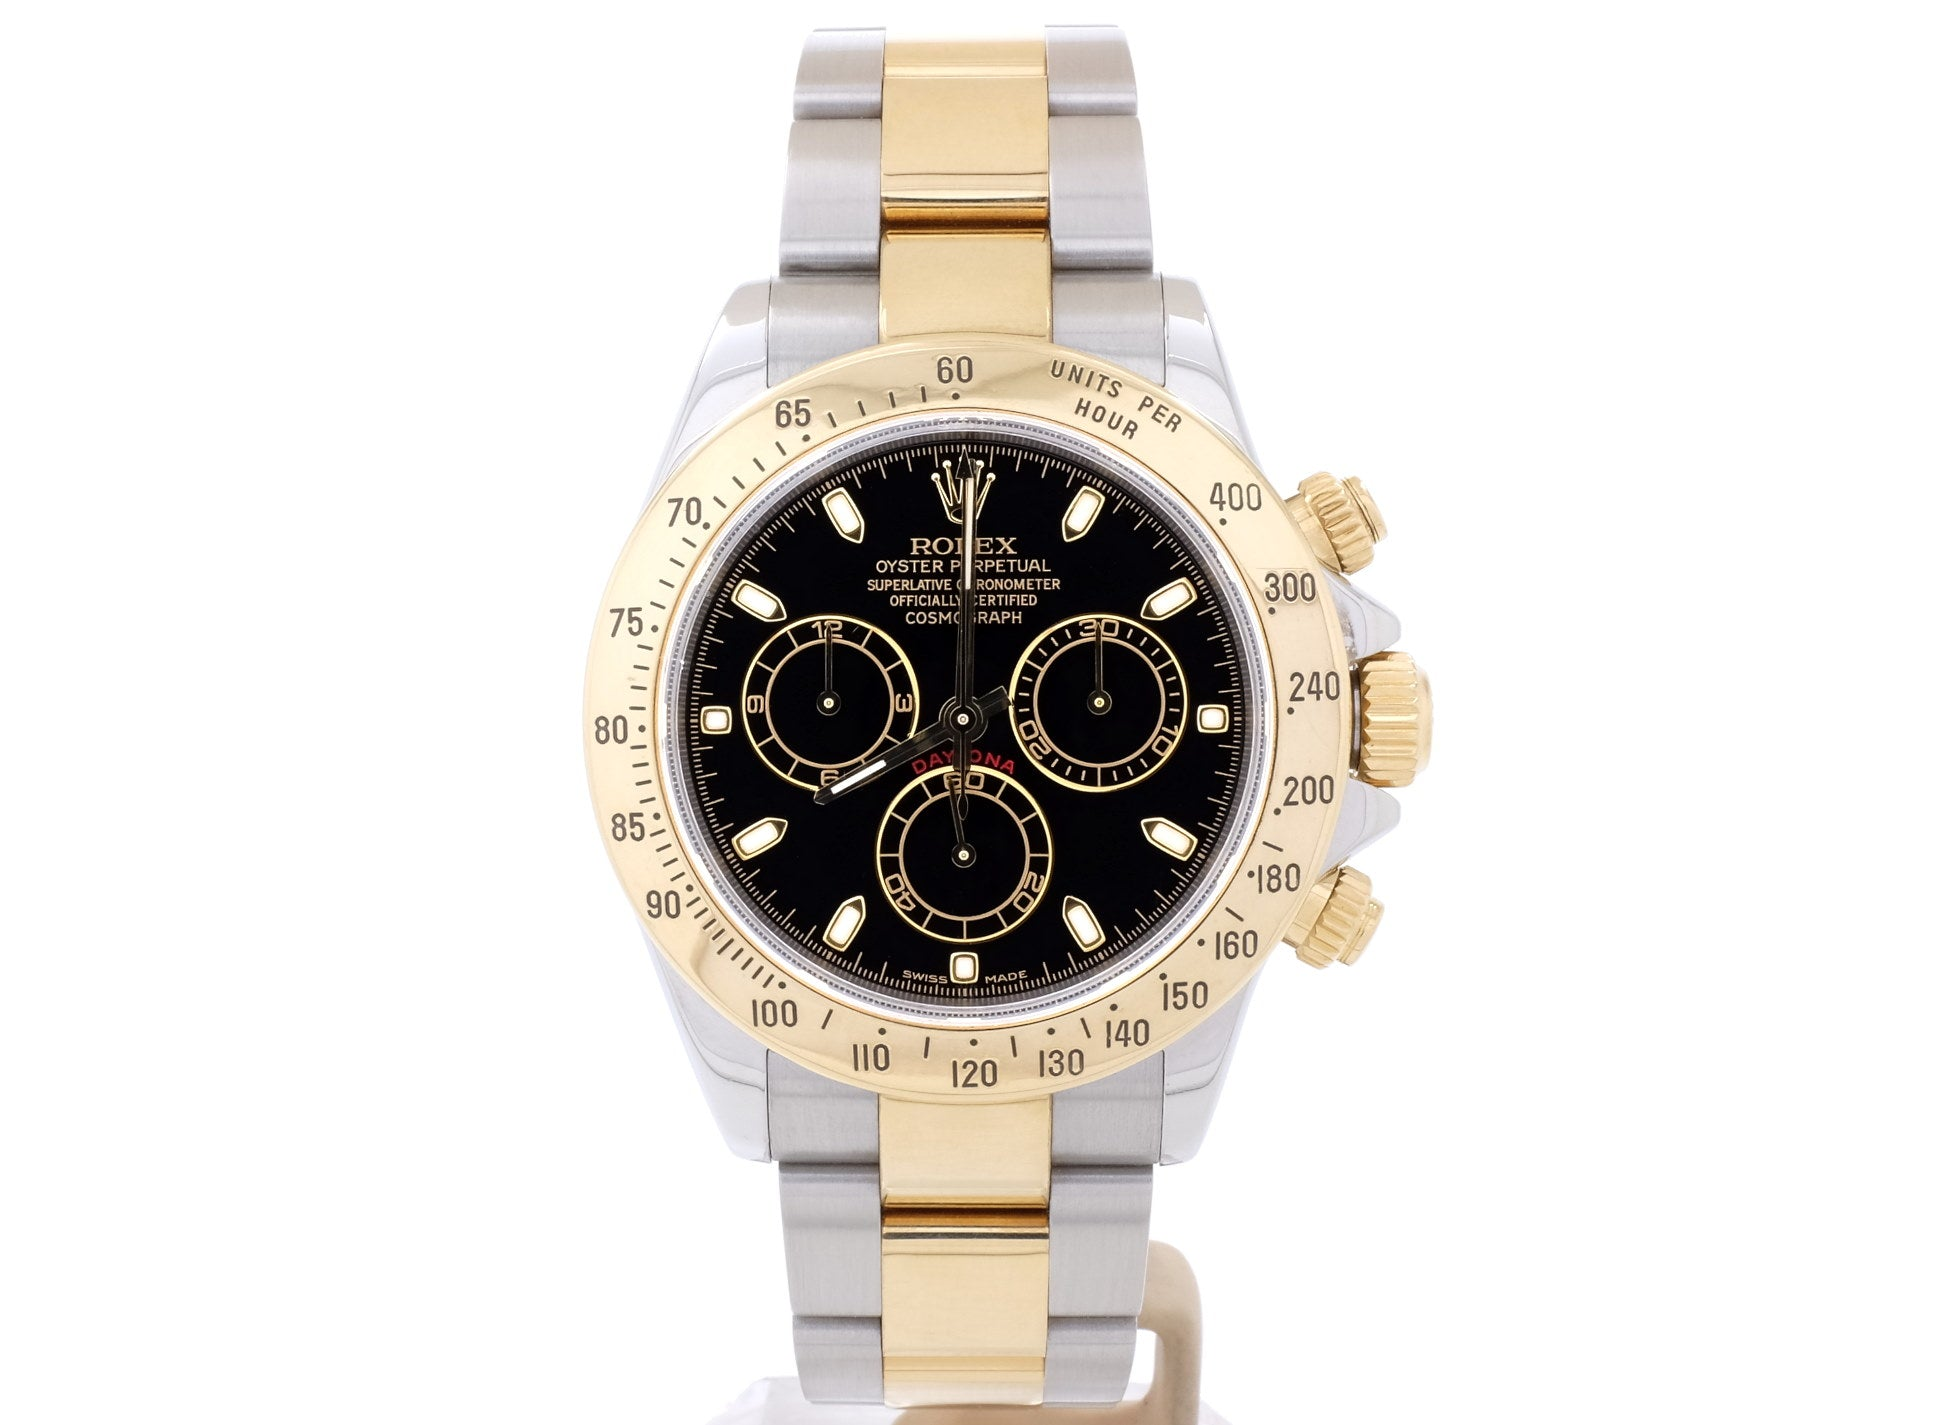 18ct Yellow Gold and Steel Rolex DAYTONA 116523 with Black Dial